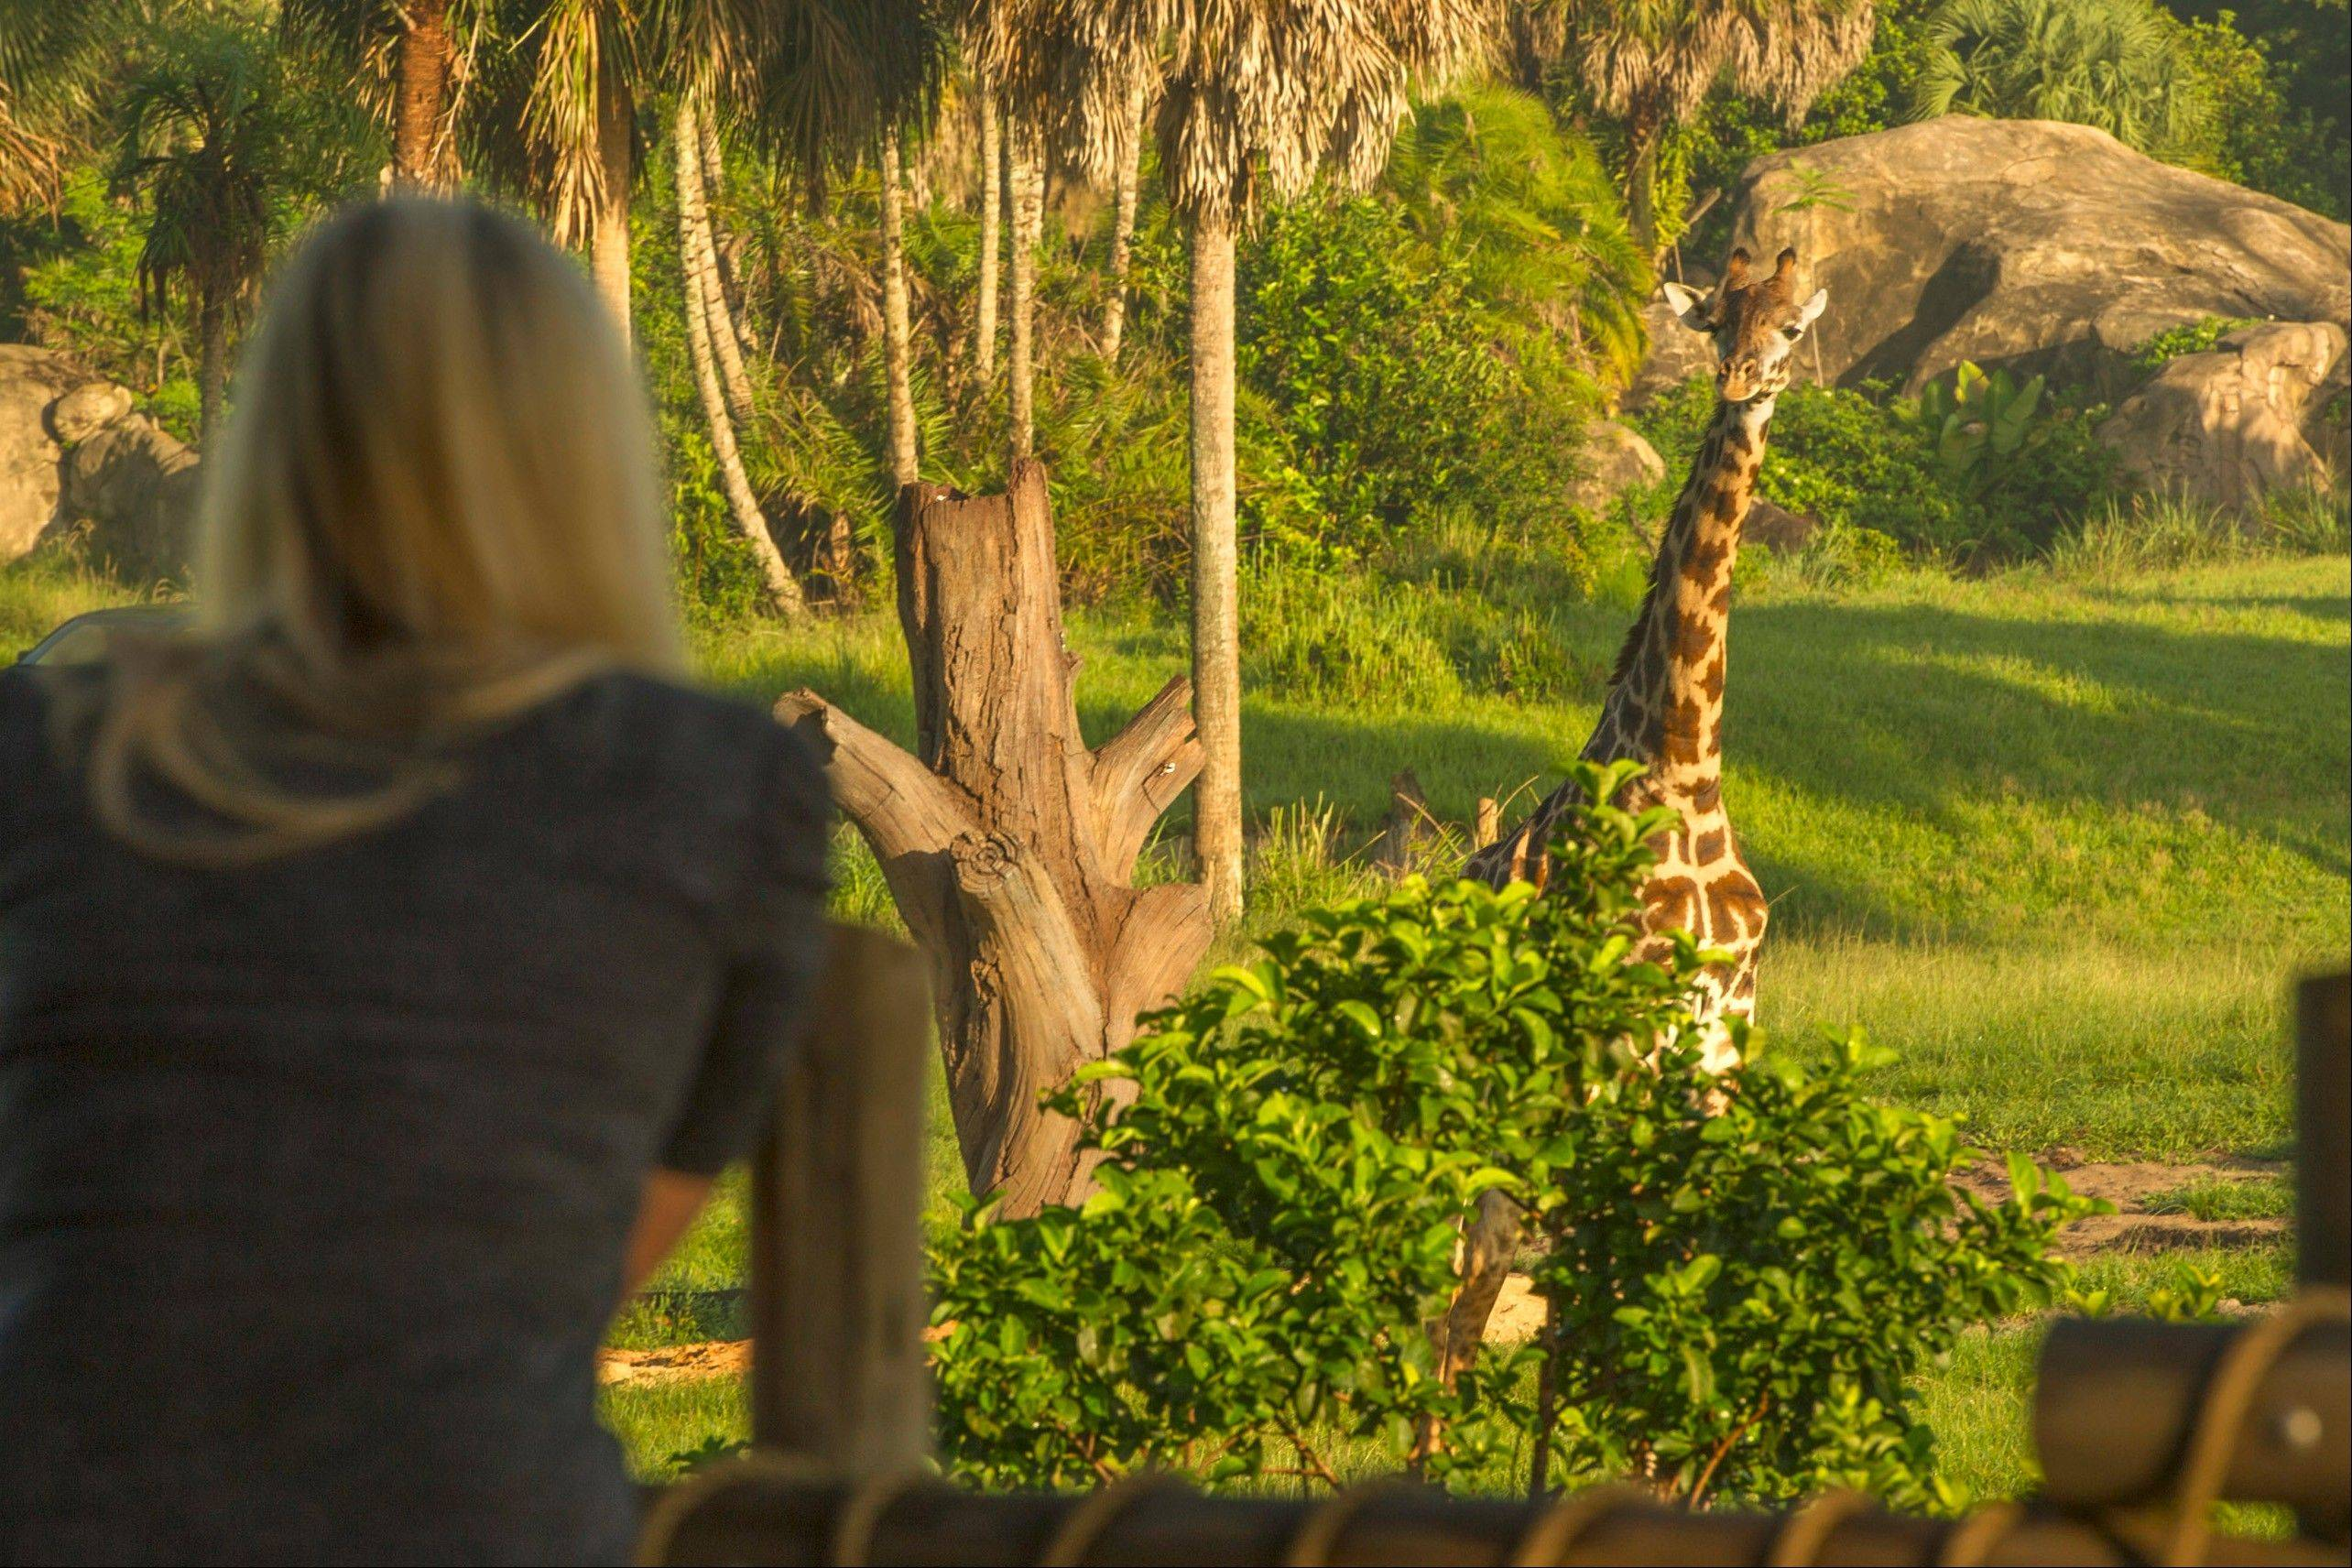 Guests look out over a wildlife-filled savanna on Wild Africa Trek at Disney�s Animal Kingdom, which is part of Walt Disney World Resort in Lake Buena Vista, Fla.